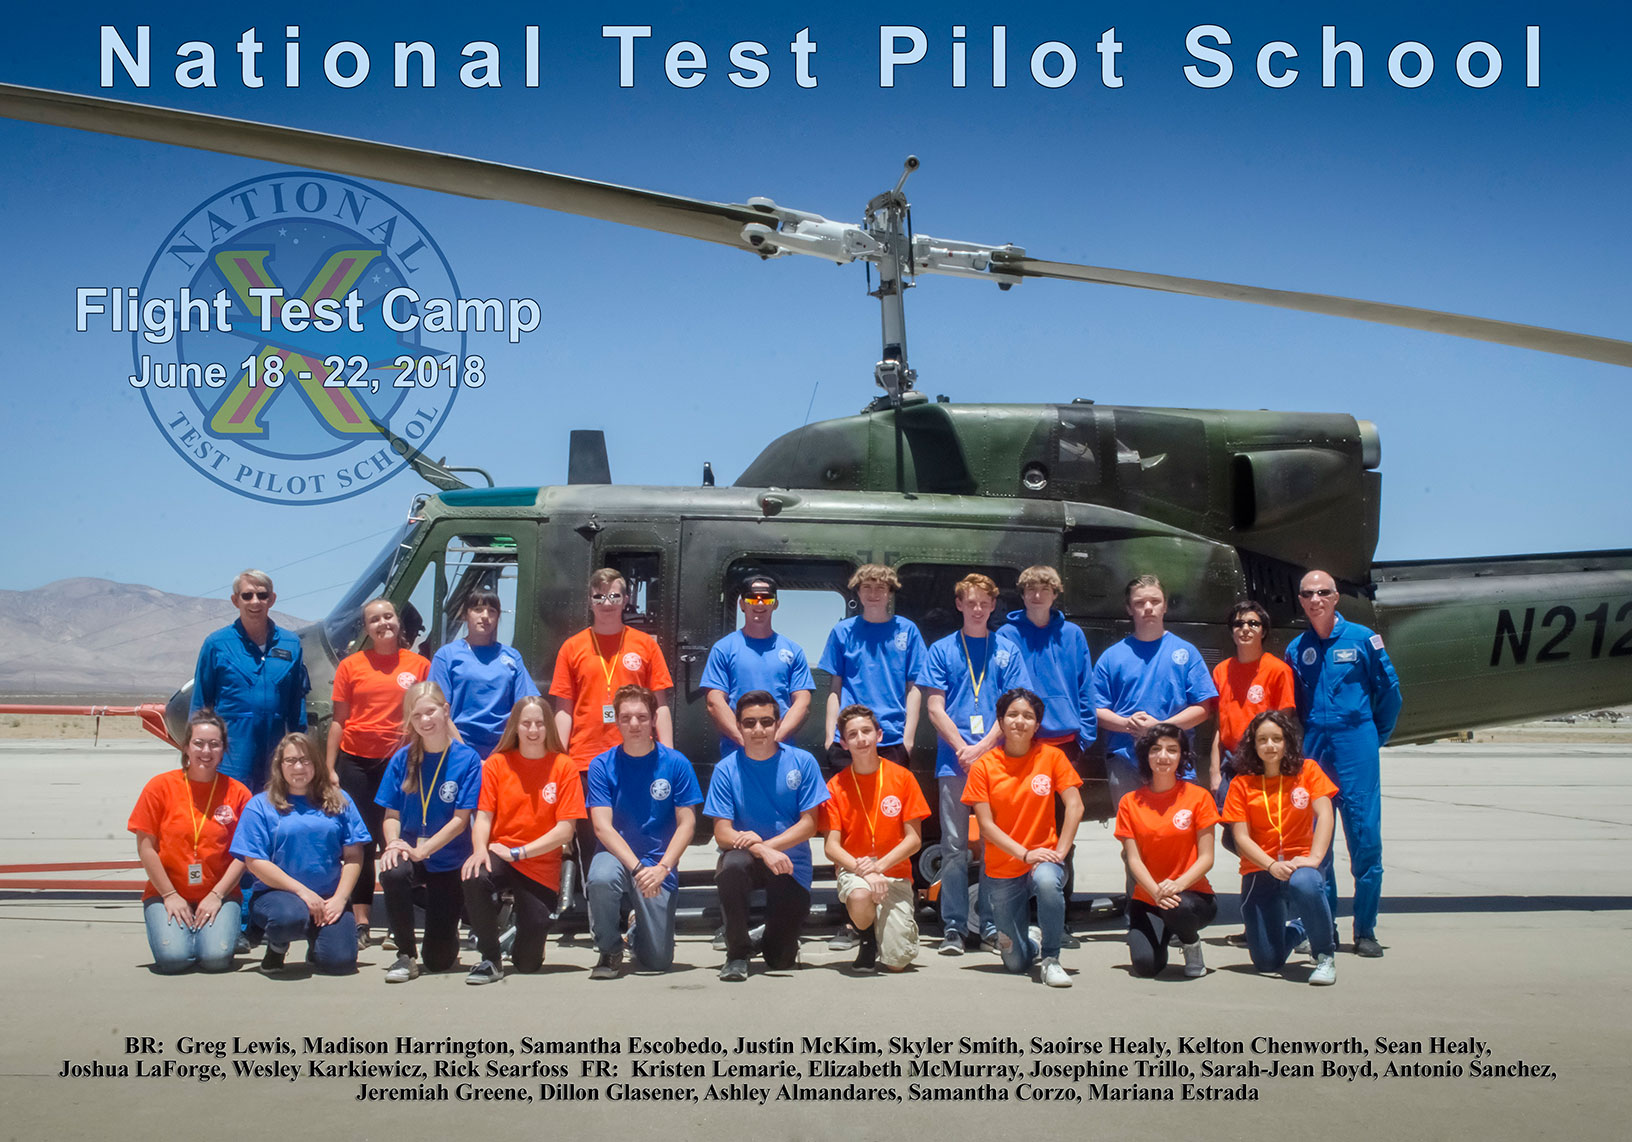 Flight Test Camp 2018 Group Photo